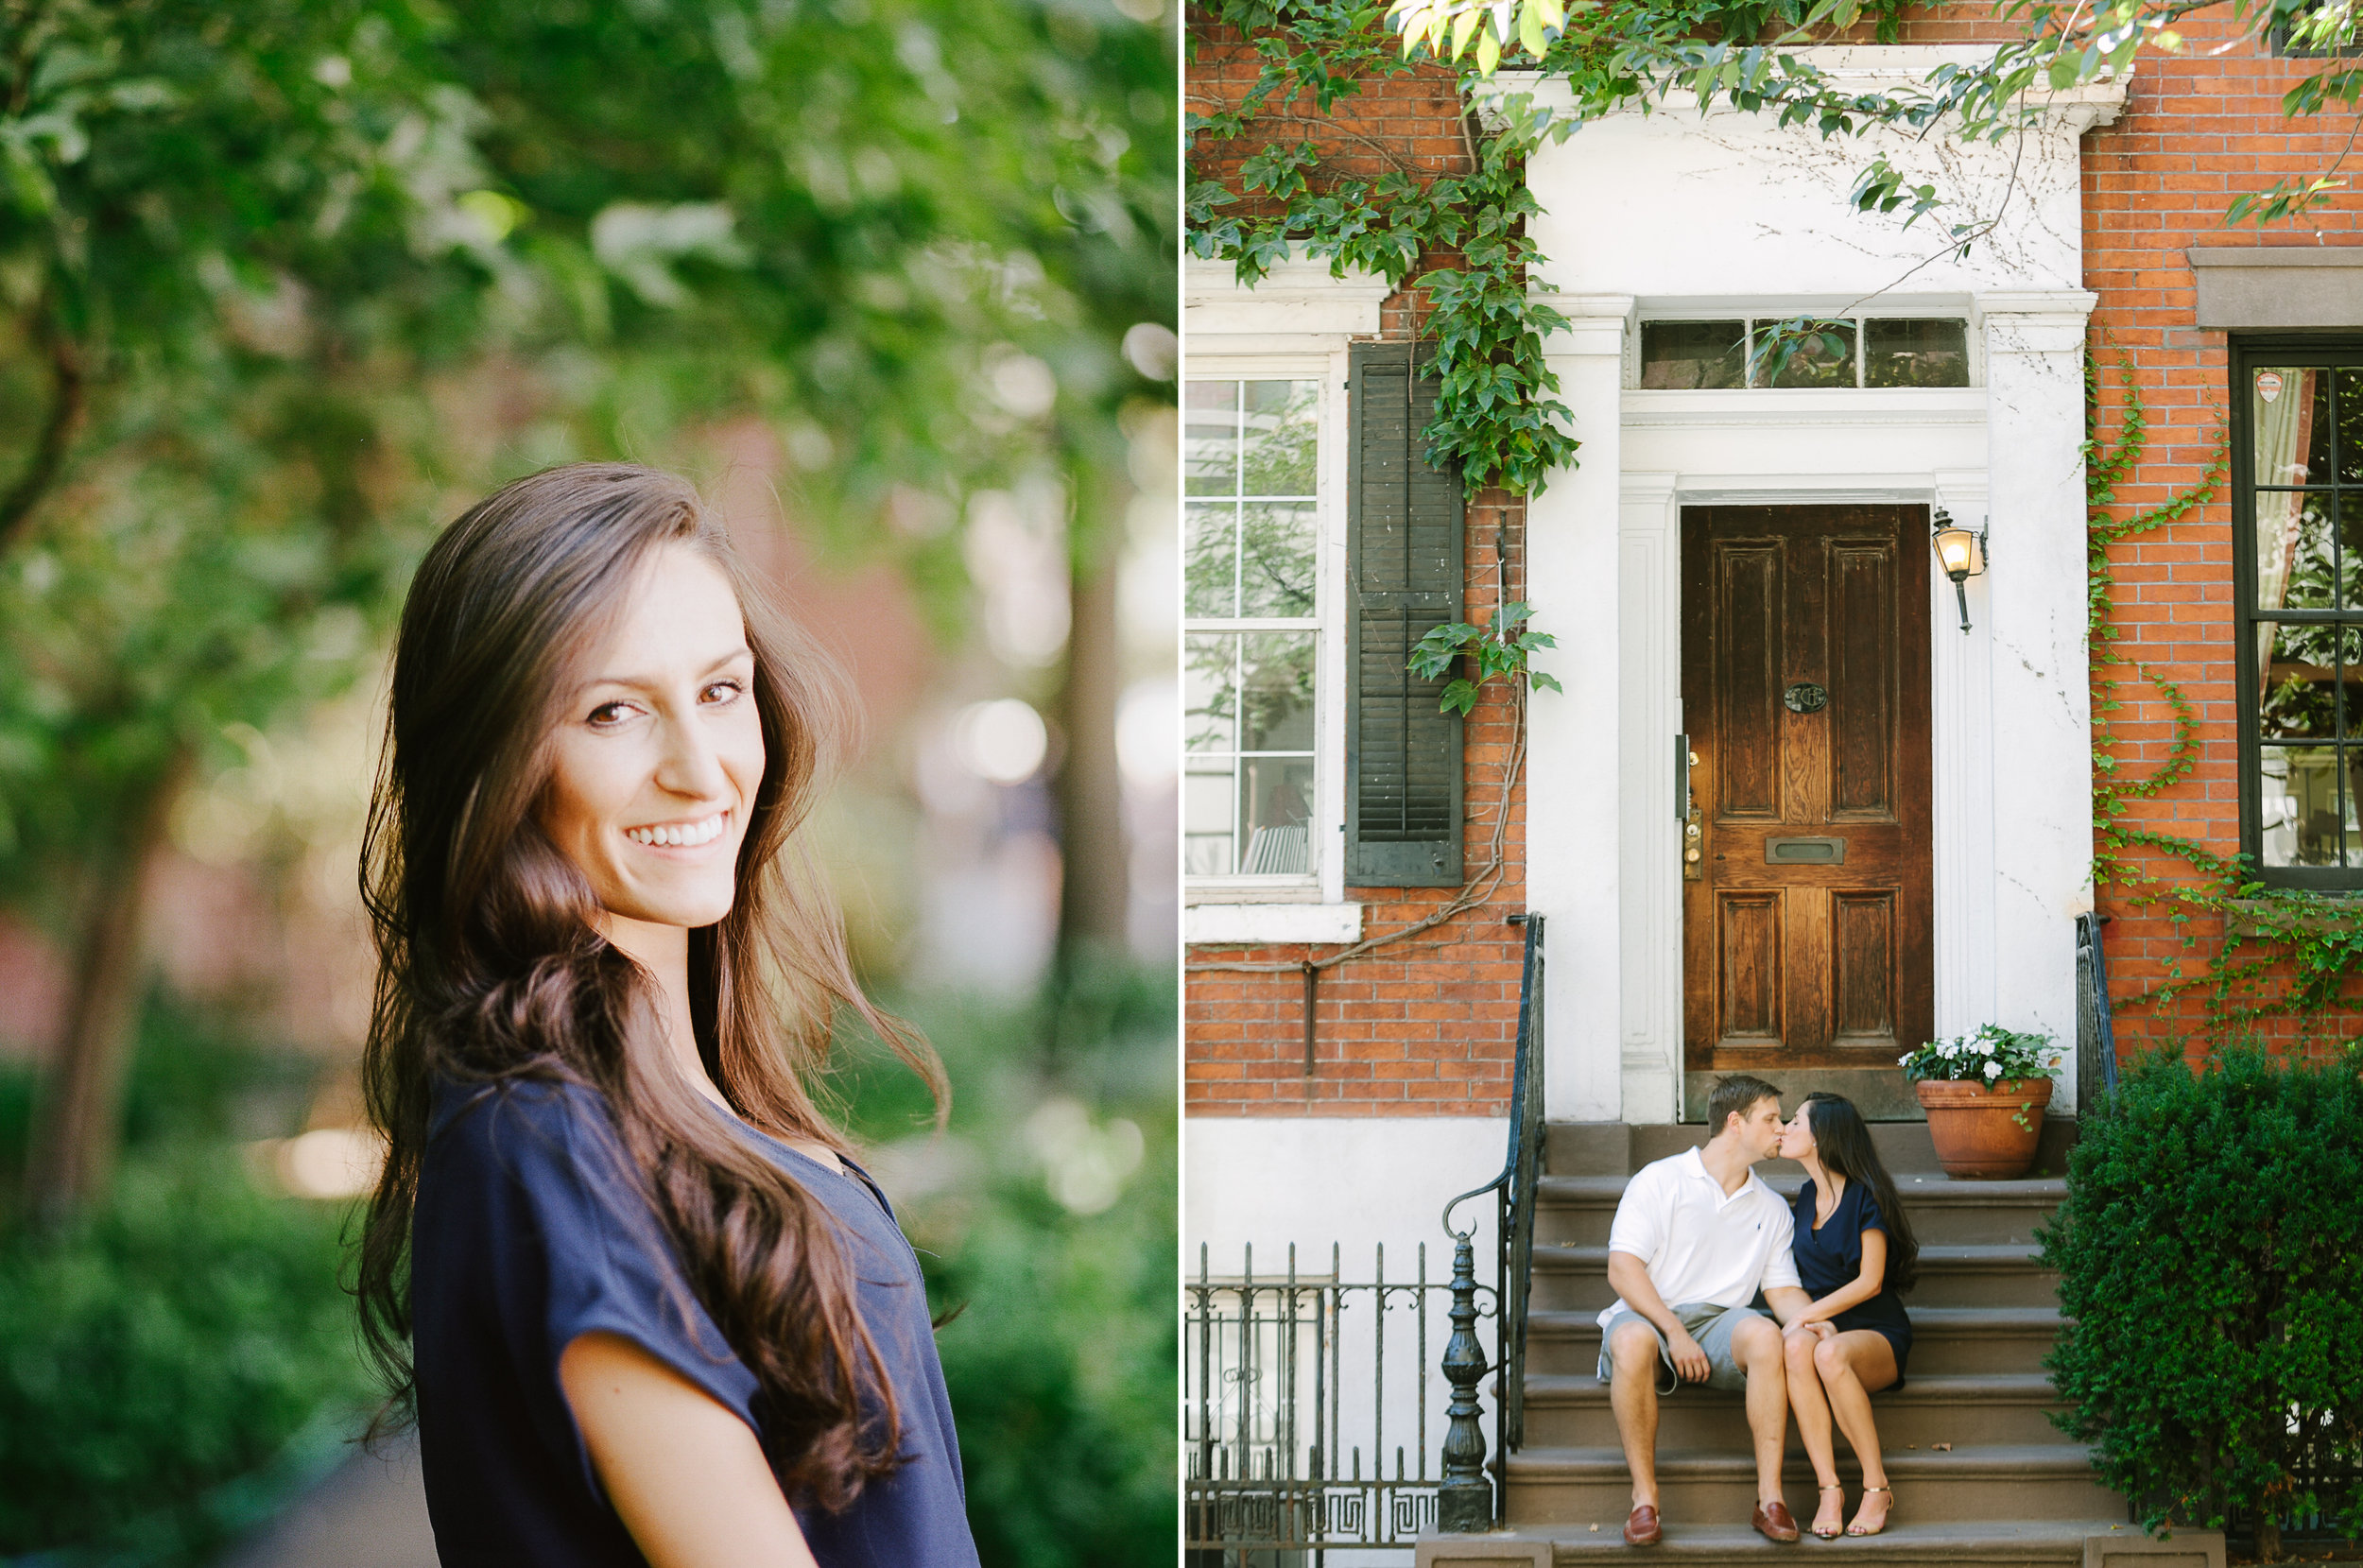 NYC-West Village-engagement session_8.jpg